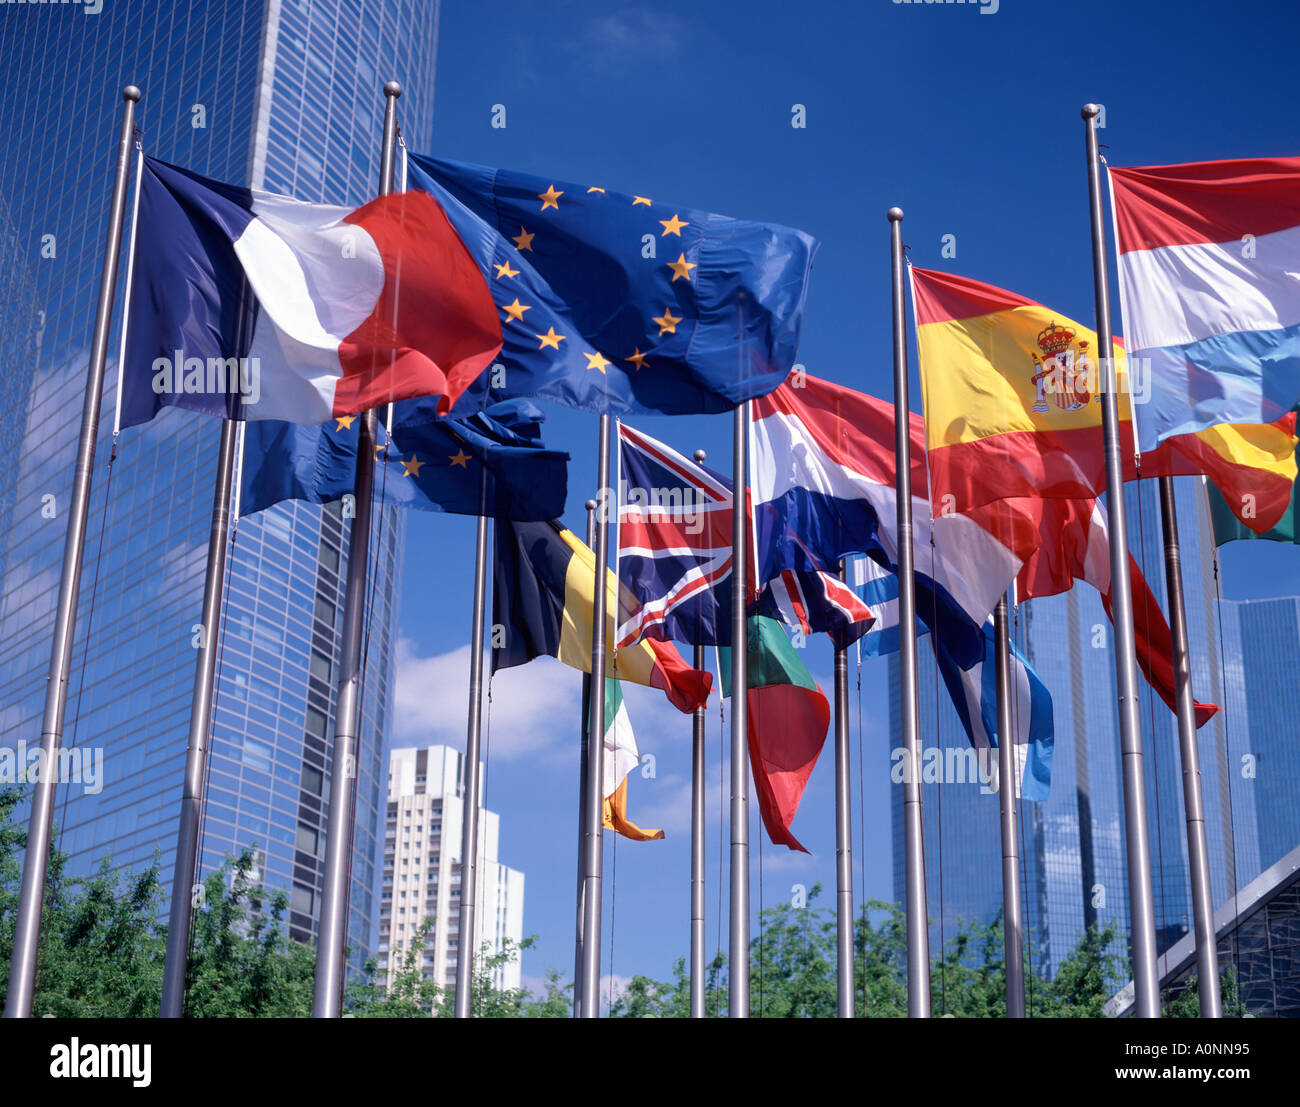 European Union Flags, La Defense, Paris, France - Stock Image